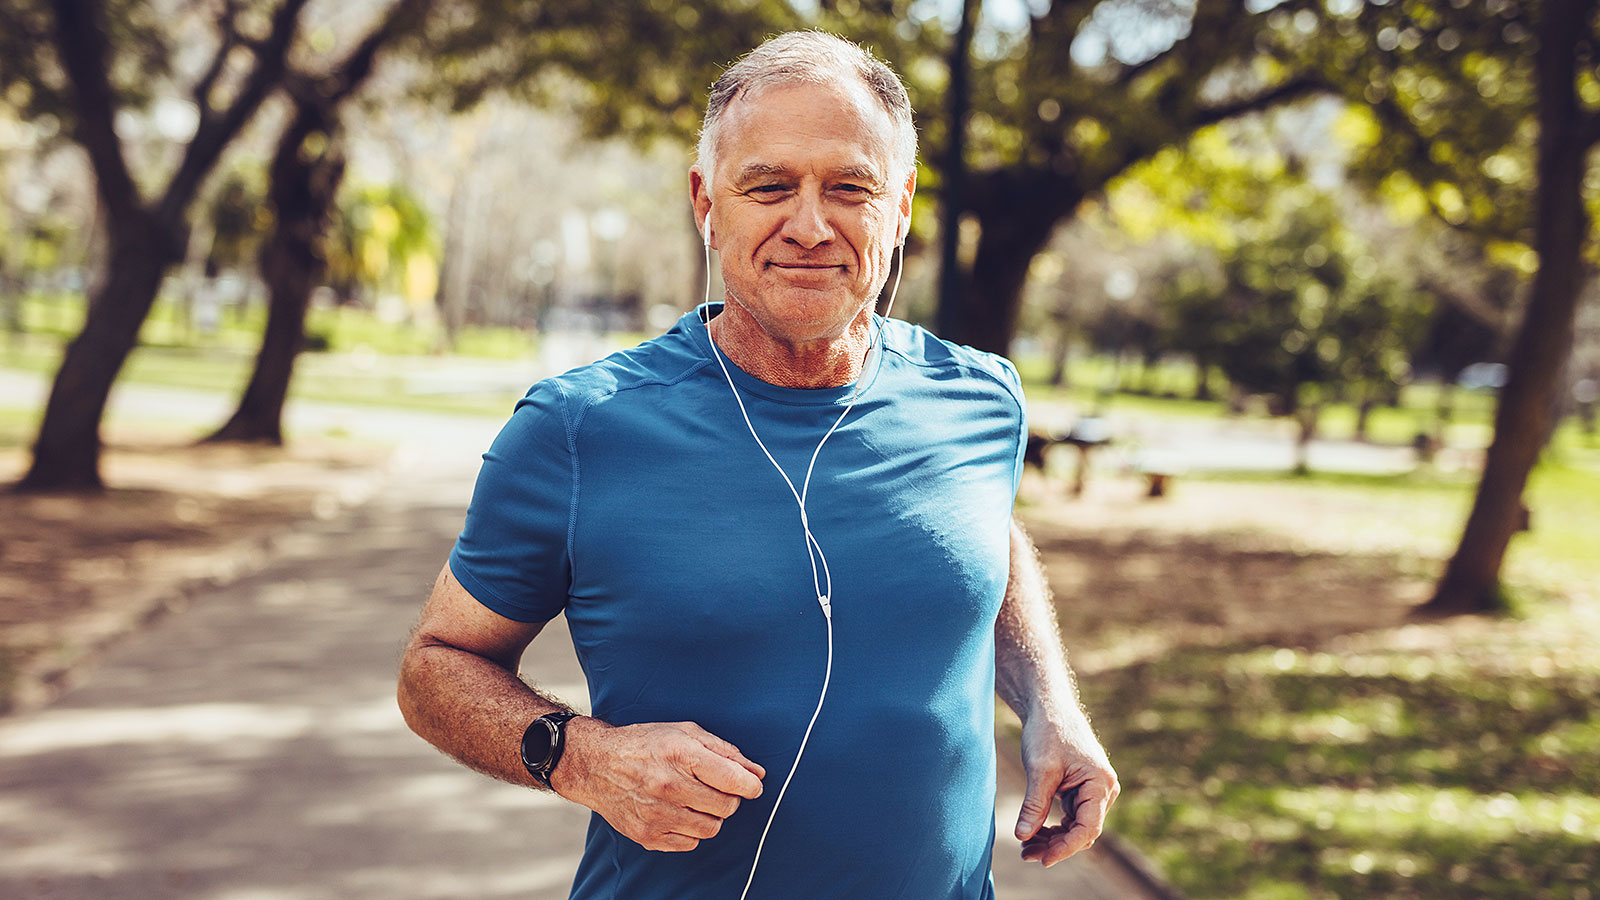 5 exercises that age you (and how to prevent it)